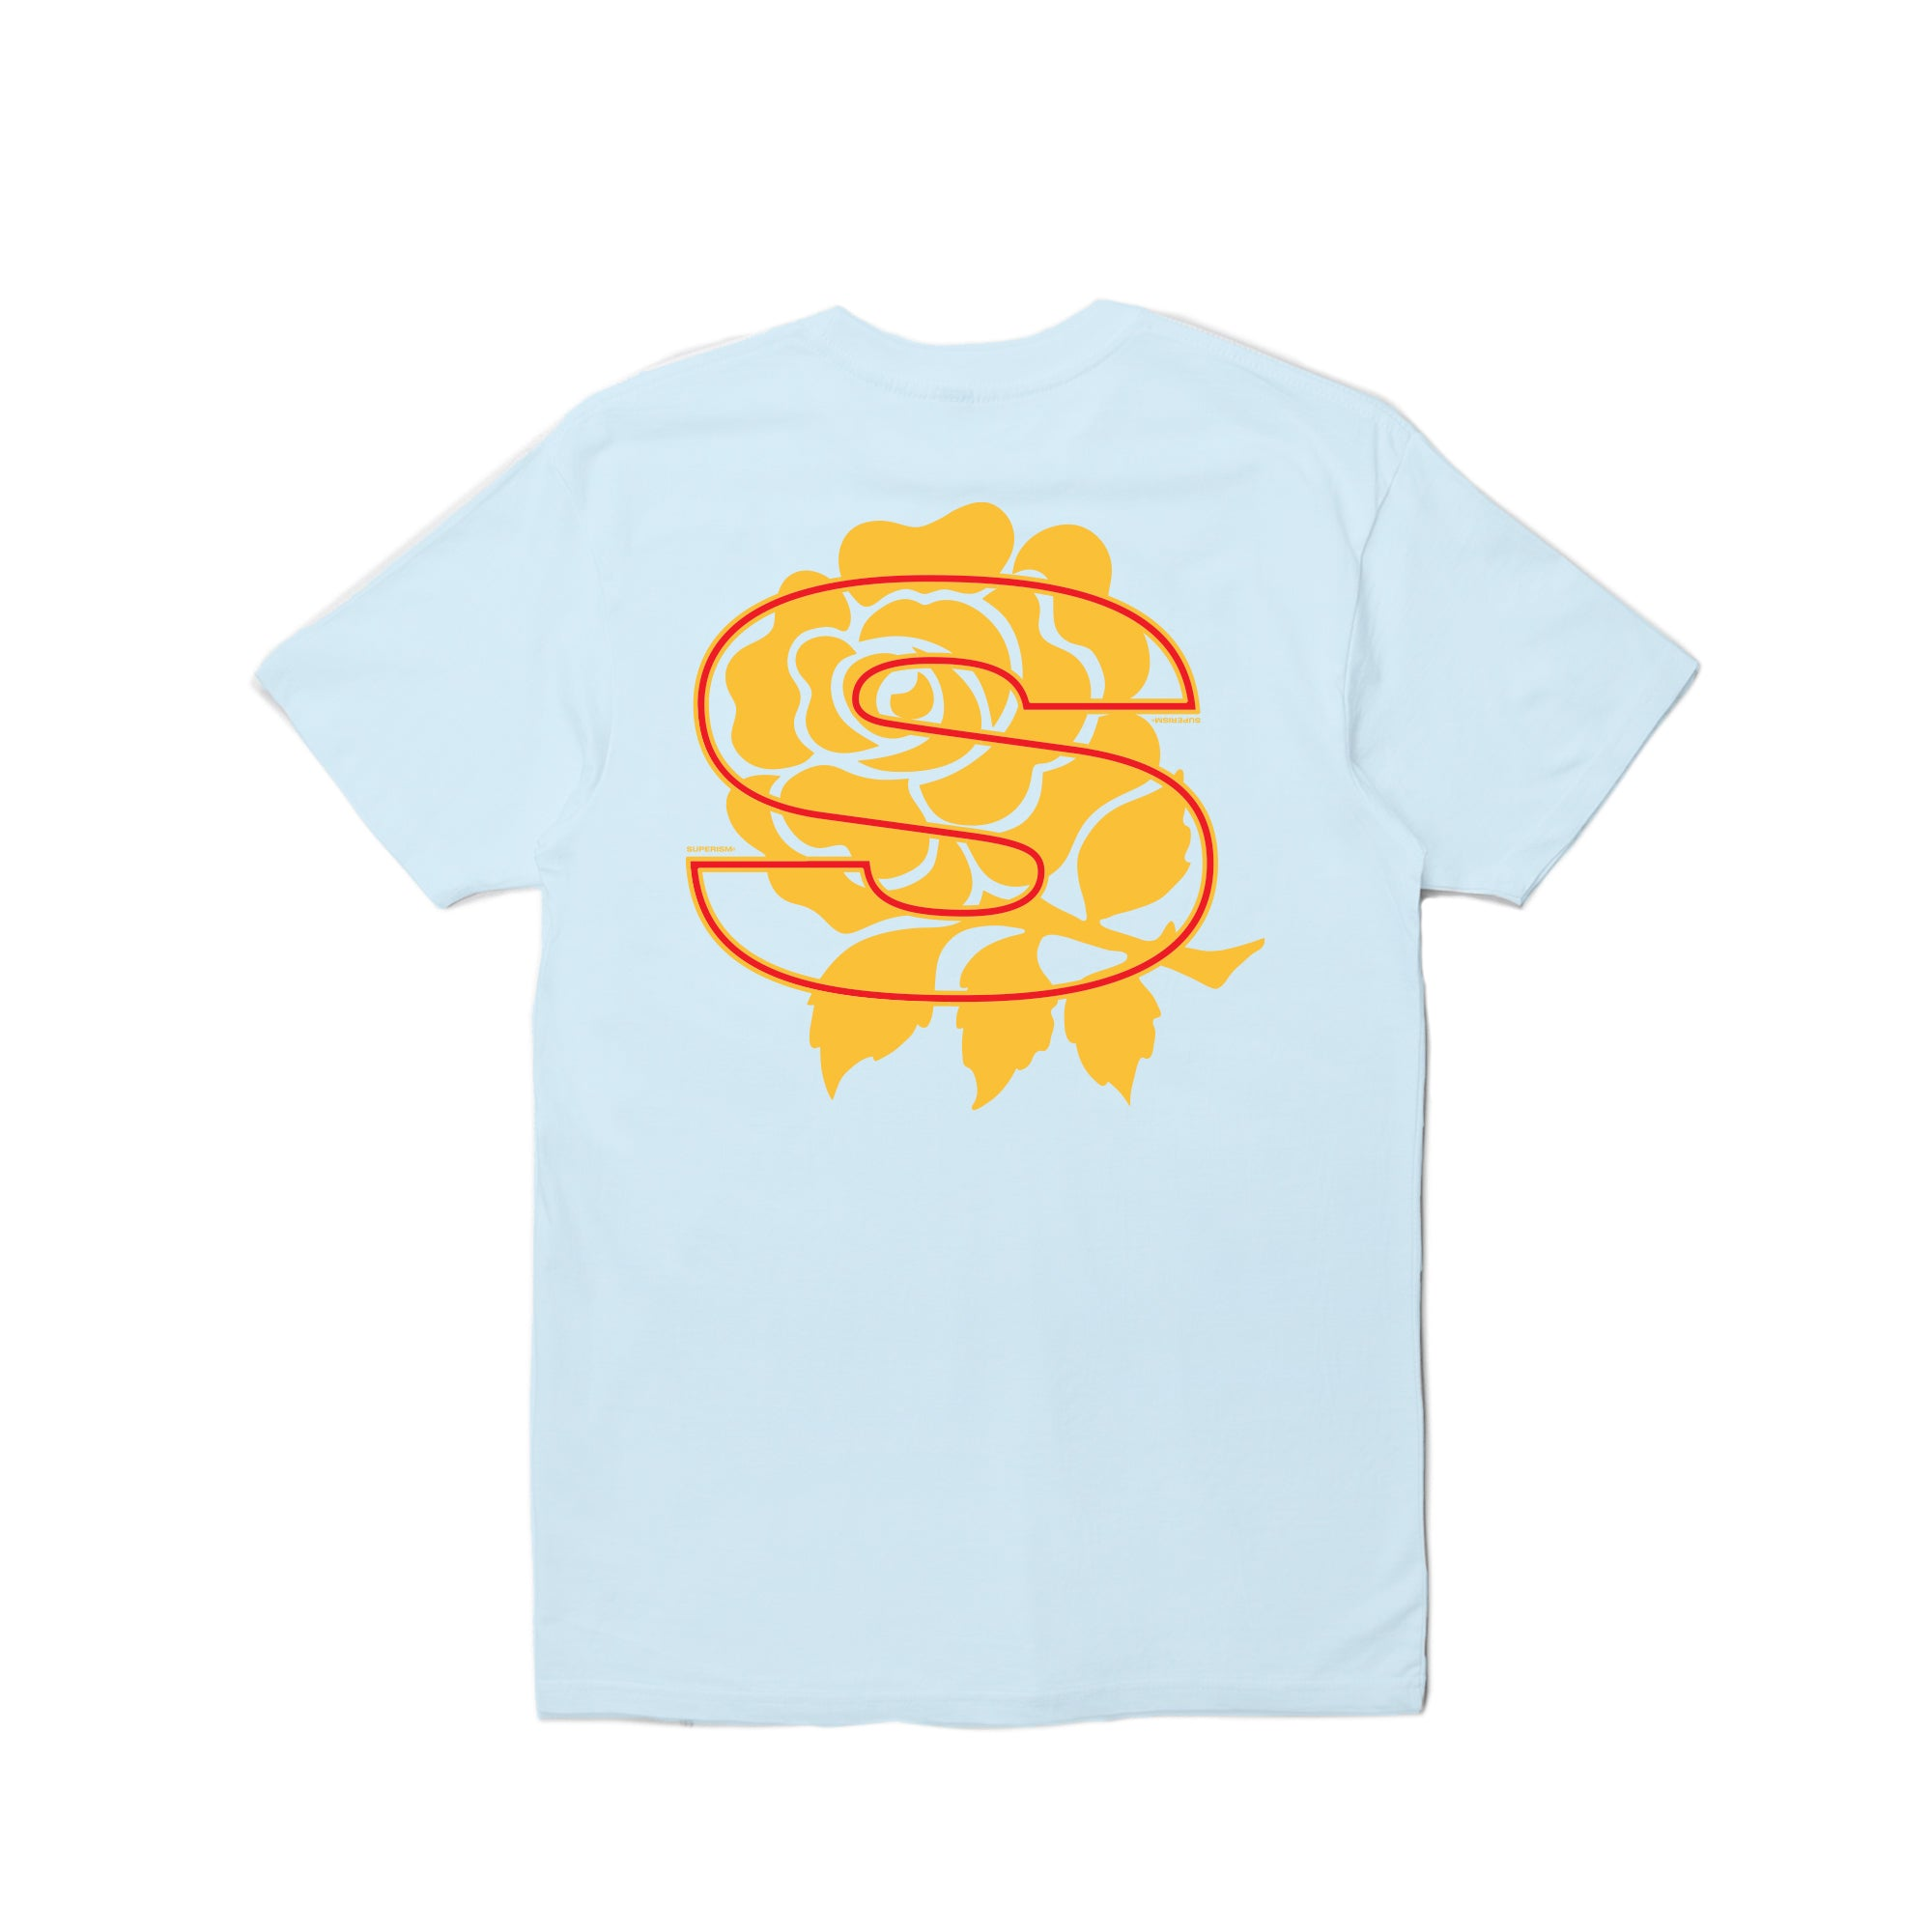 Rose Vision - Light Blue